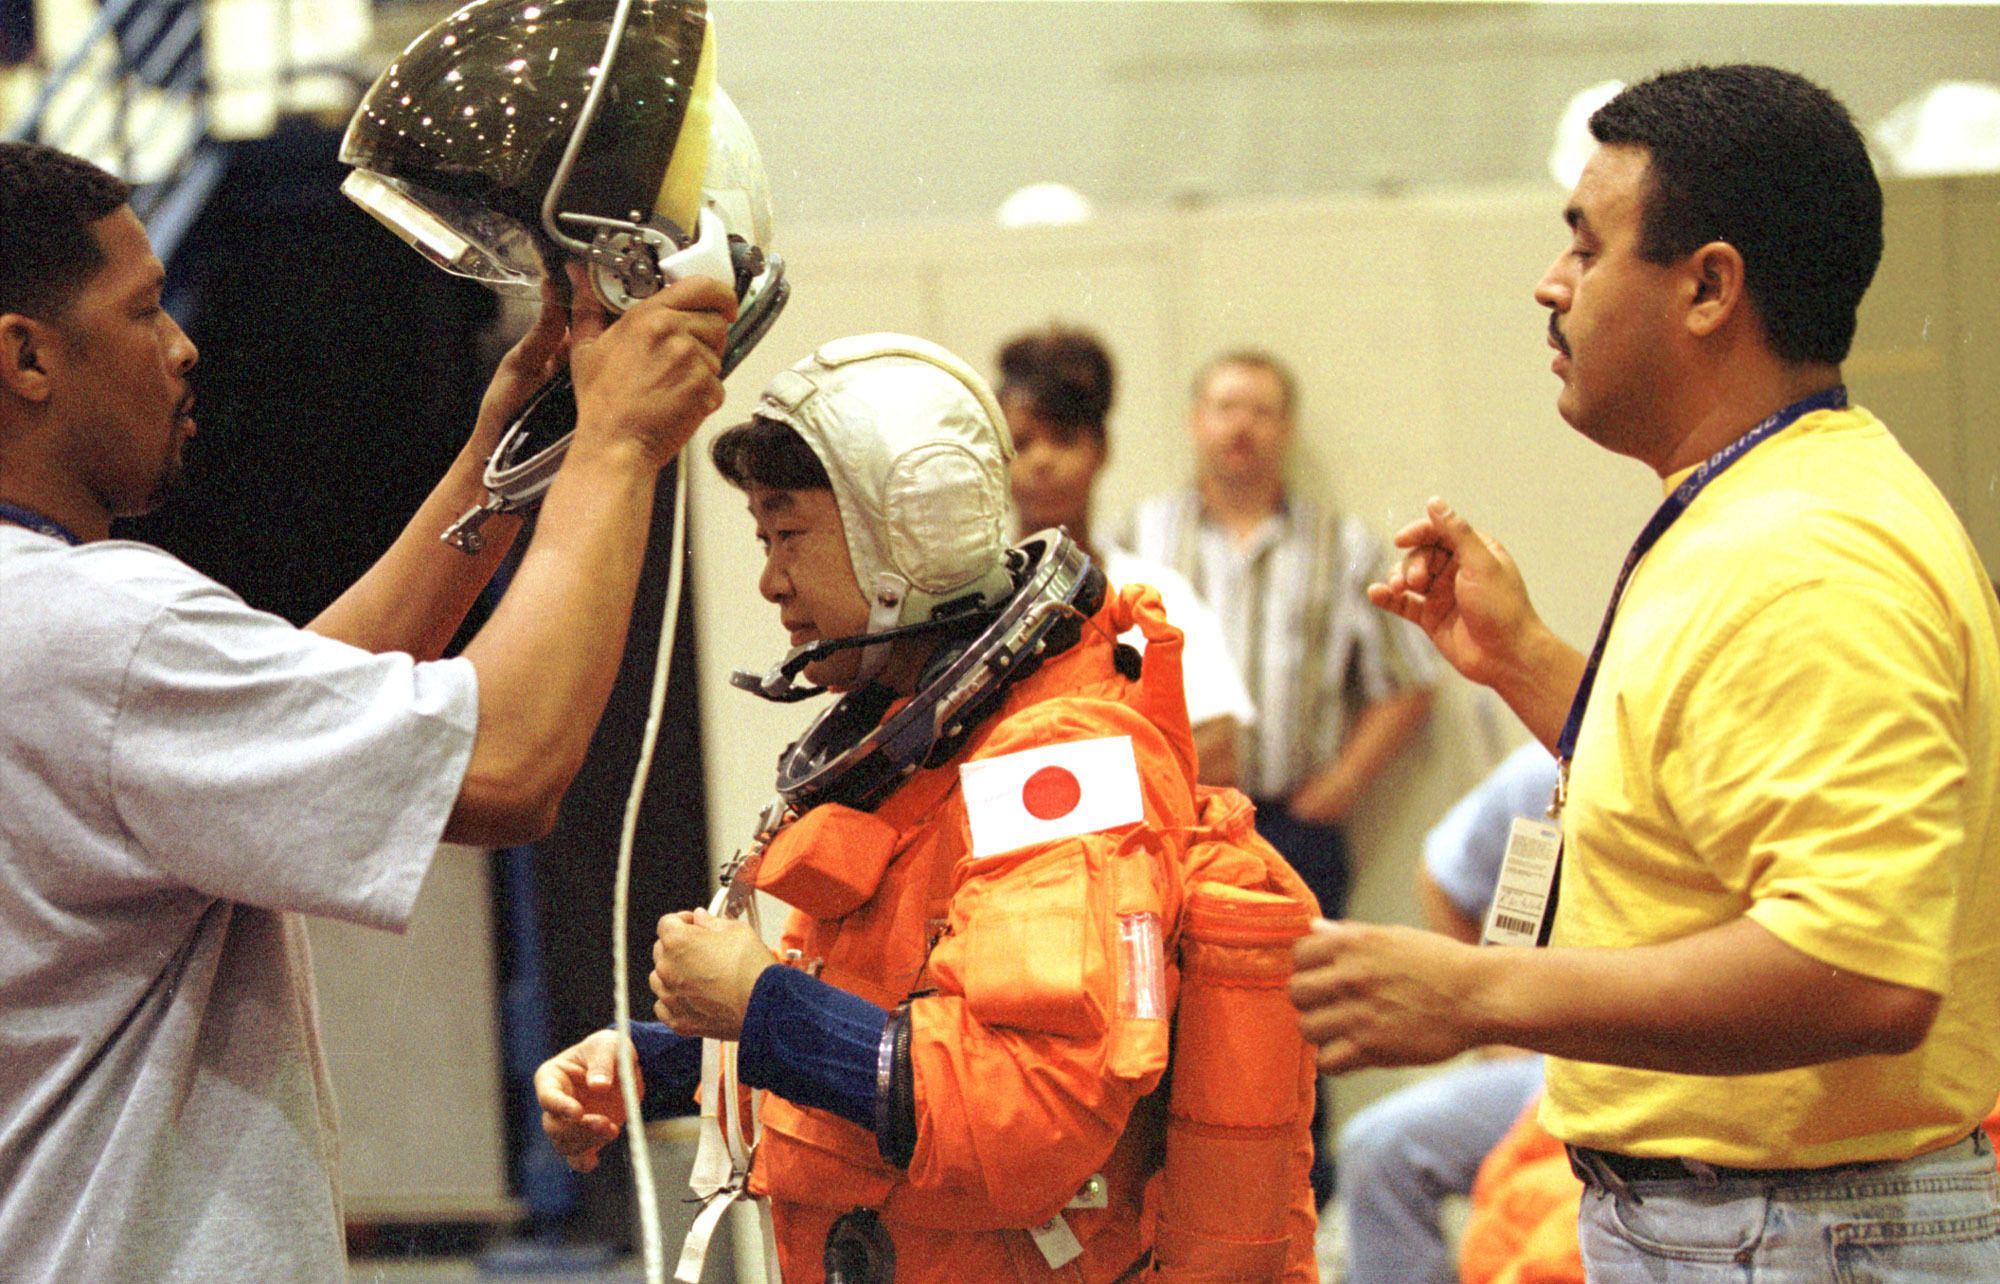 Japanese astronaut Chiaki Mukai at Nasa Space Center in Houston (Photo: Paul S. Howell/Getty Images)